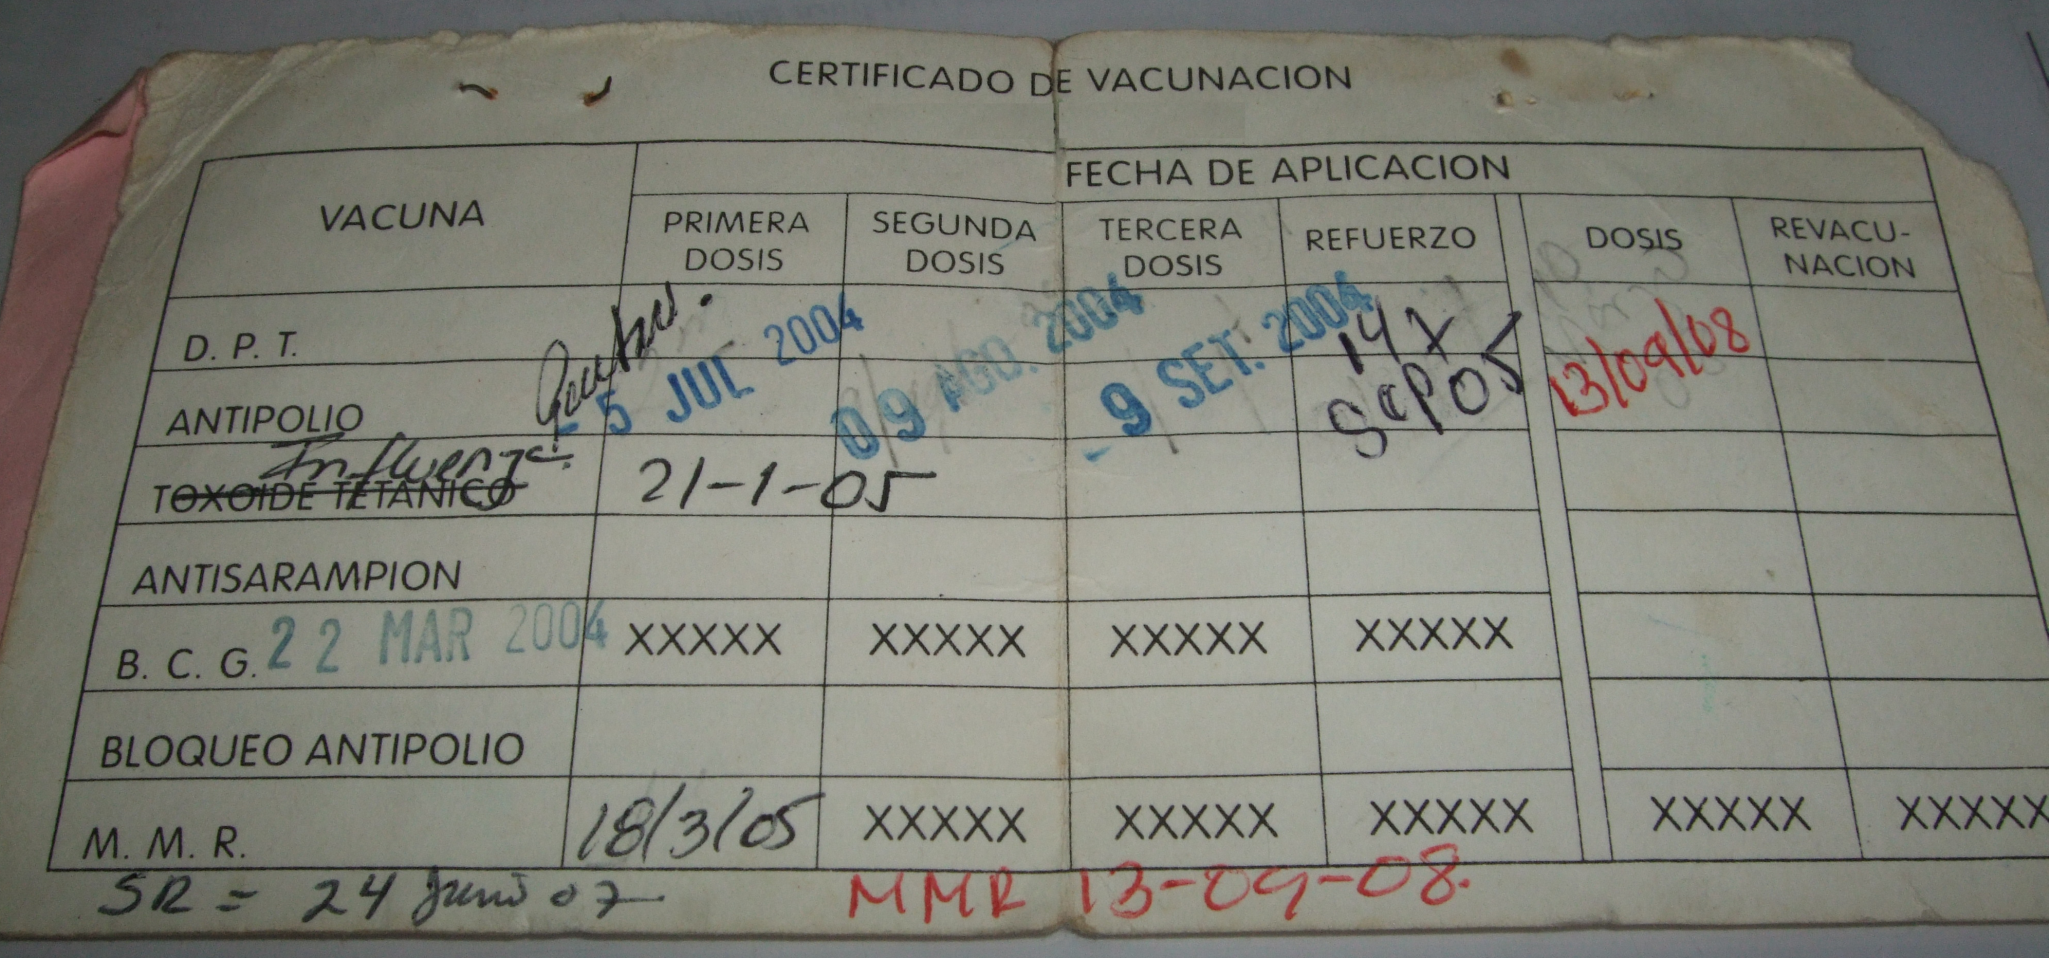 Several instances of improvisation on a vaccination card.